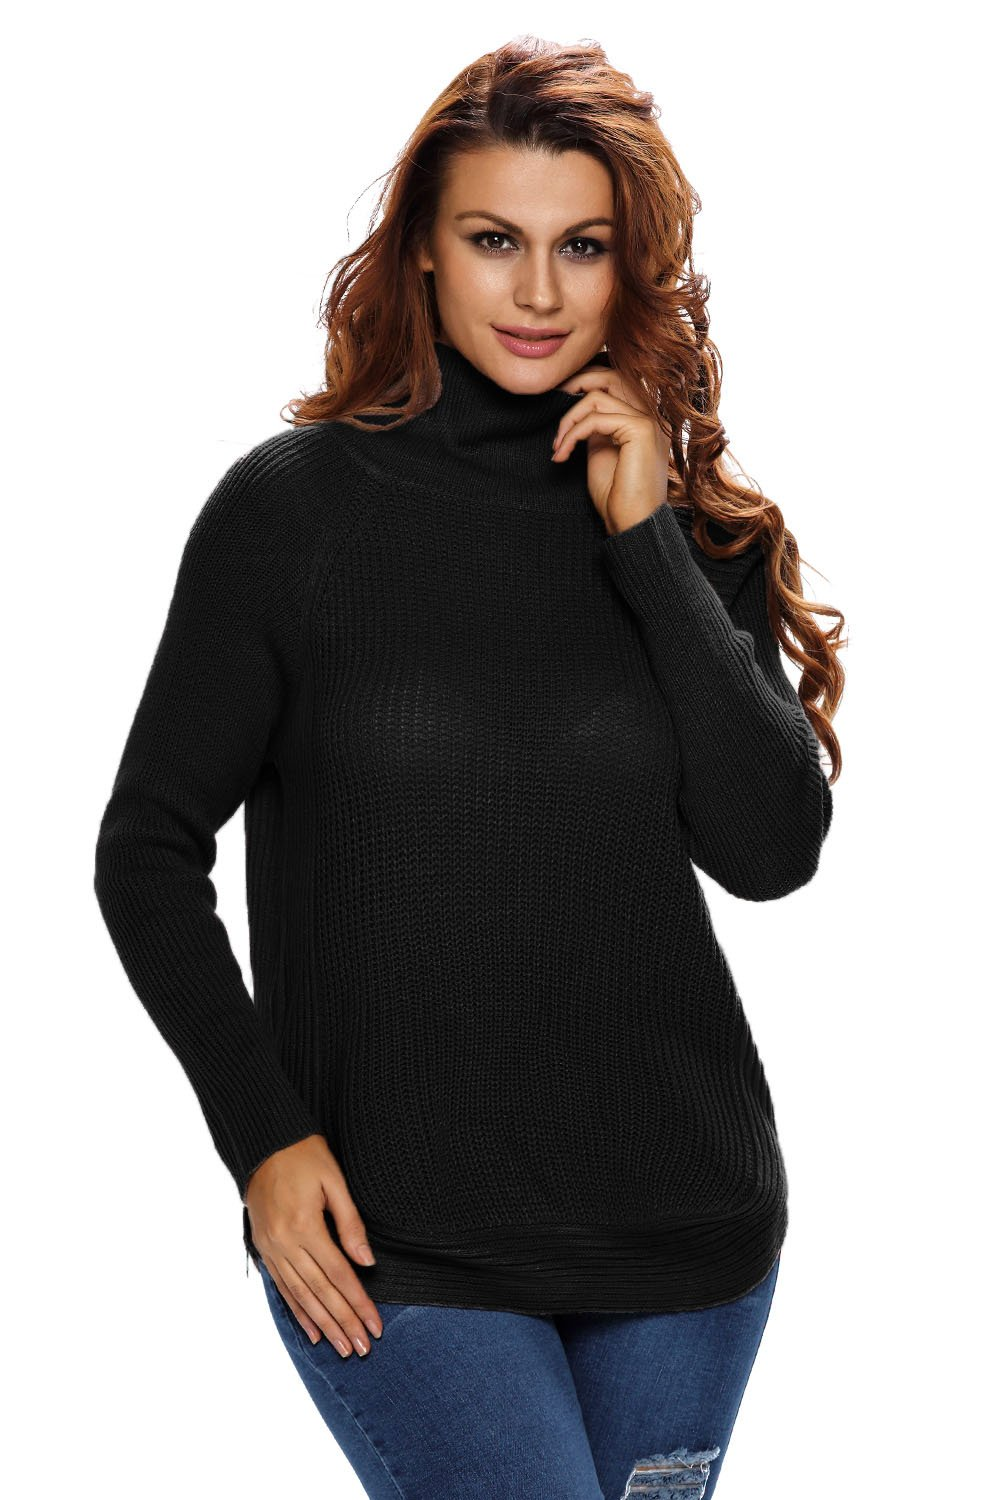 Black High Neck Pullover Side Zipped Sweater Top